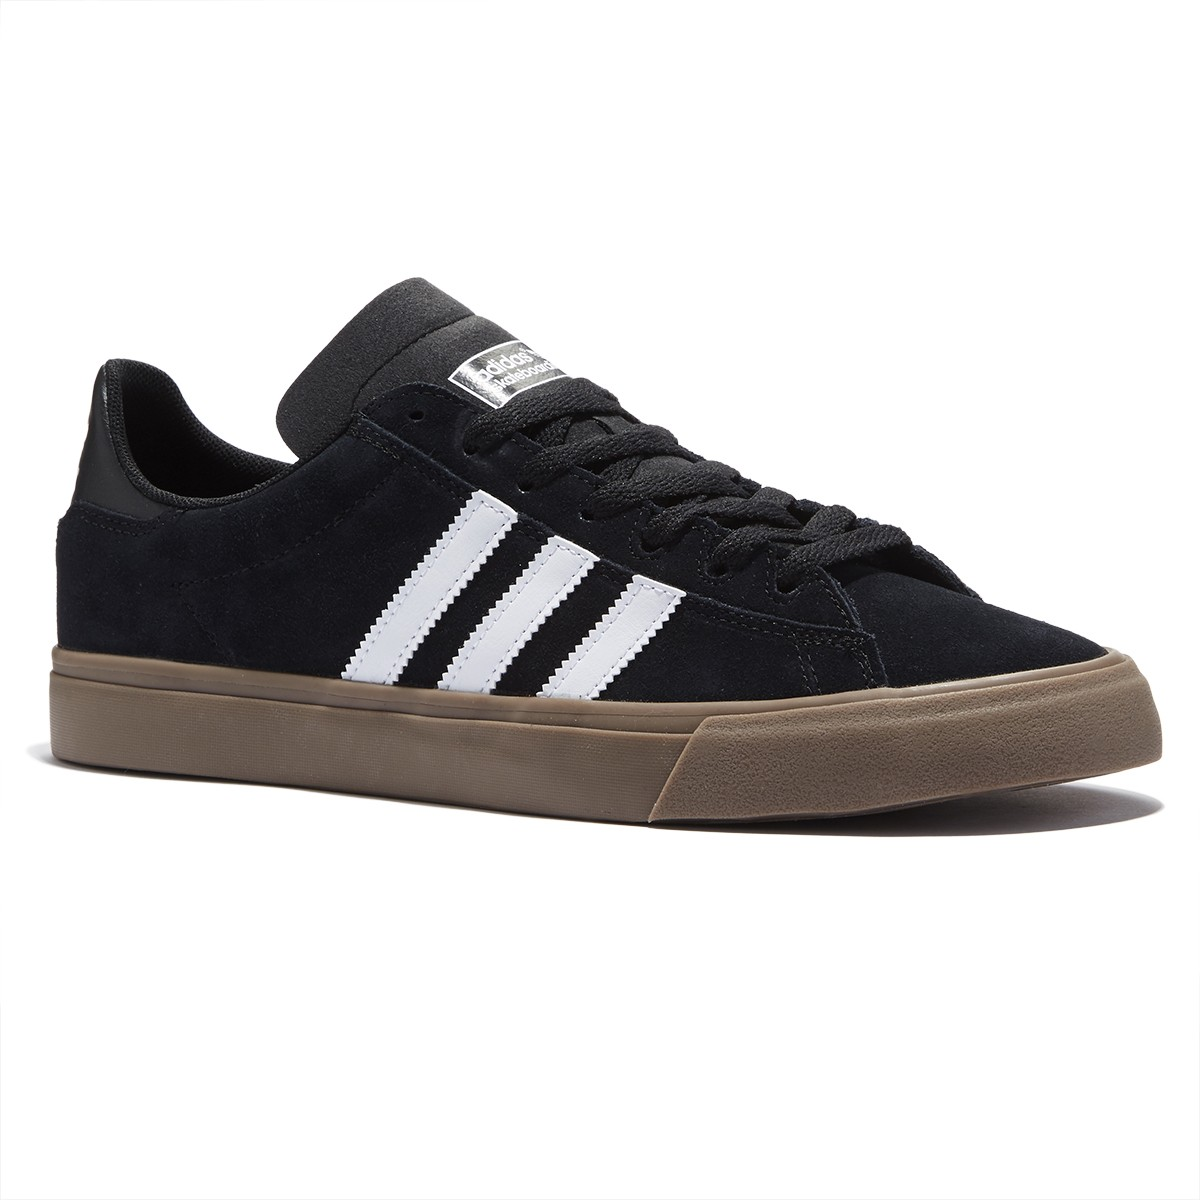 adidas campus vulc ii shoes - black/white/gum - 8.0 AQIFXRN